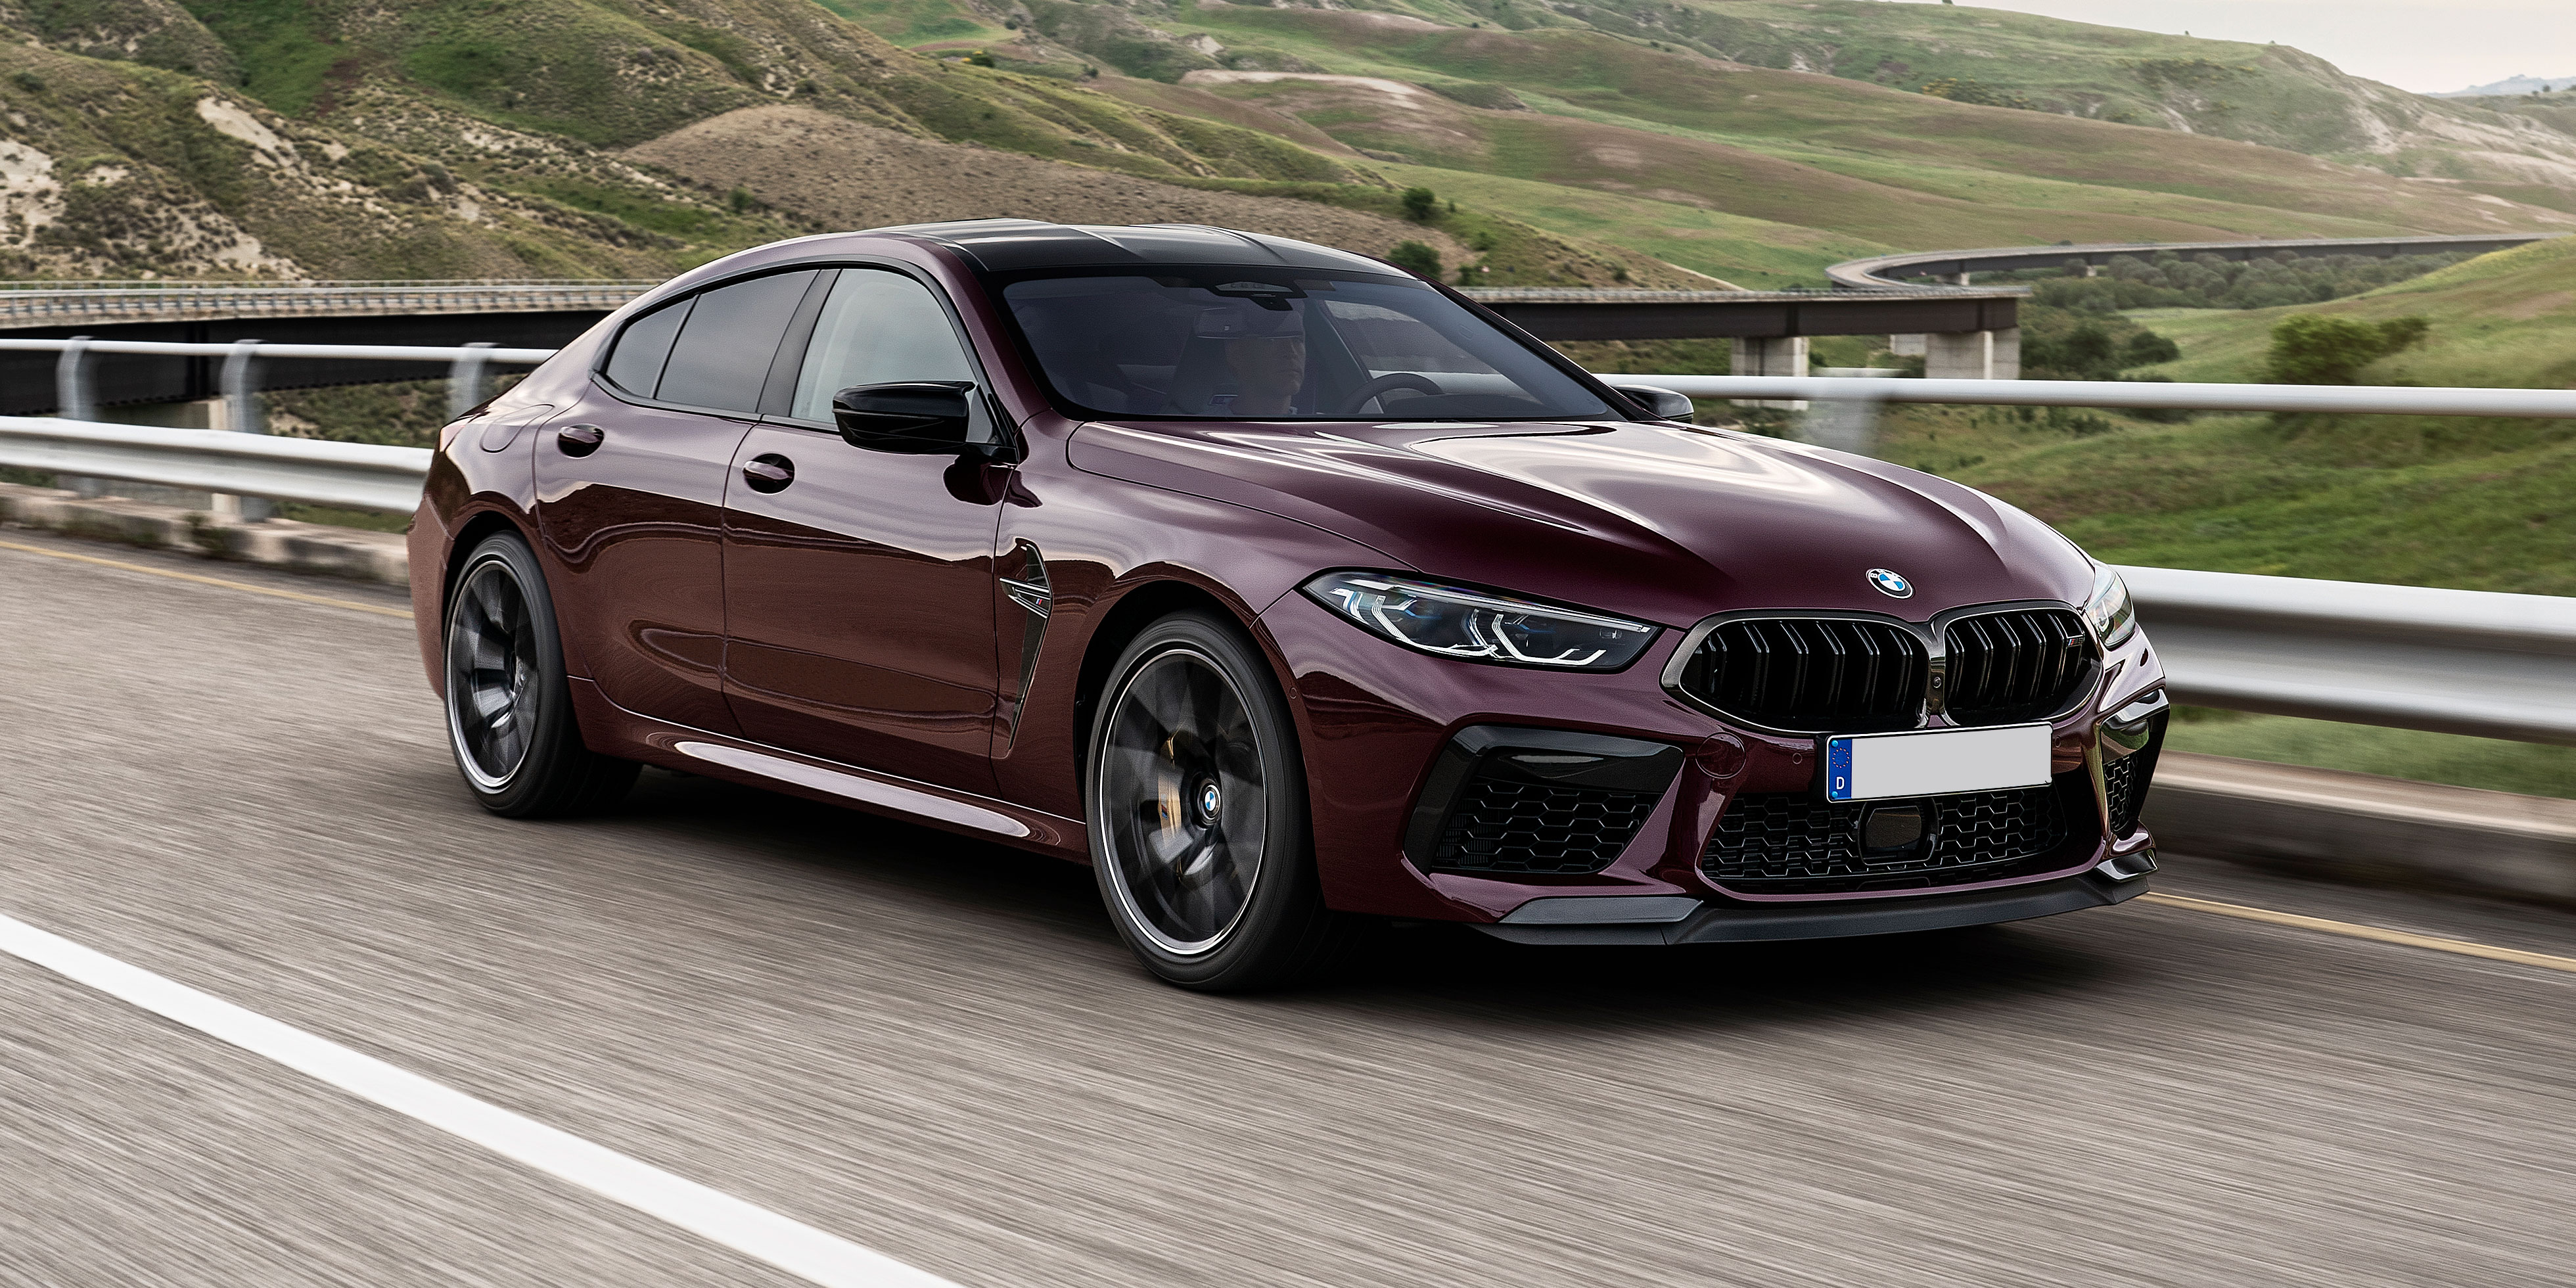 Bmw M8 Gran Coupe Review 2021 Carwow